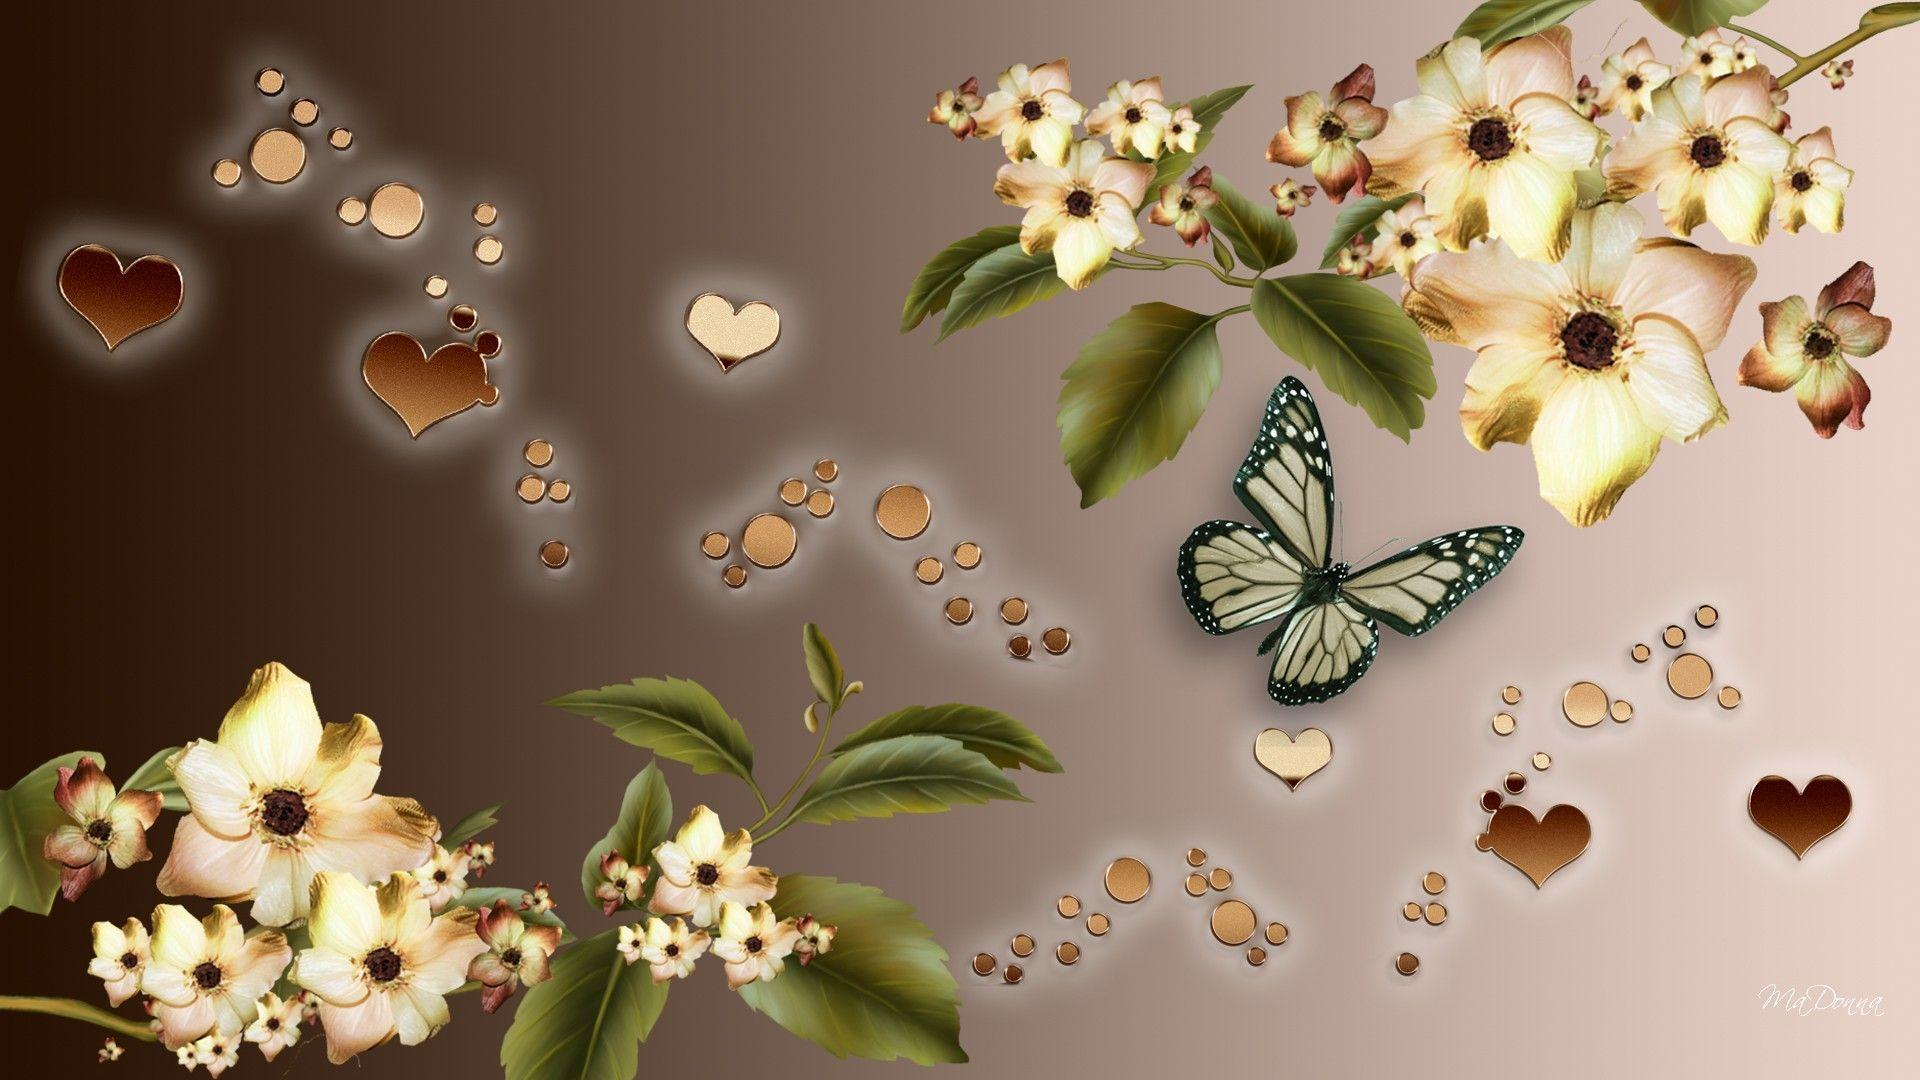 hearts and flowers wallpapers wallpaper cave